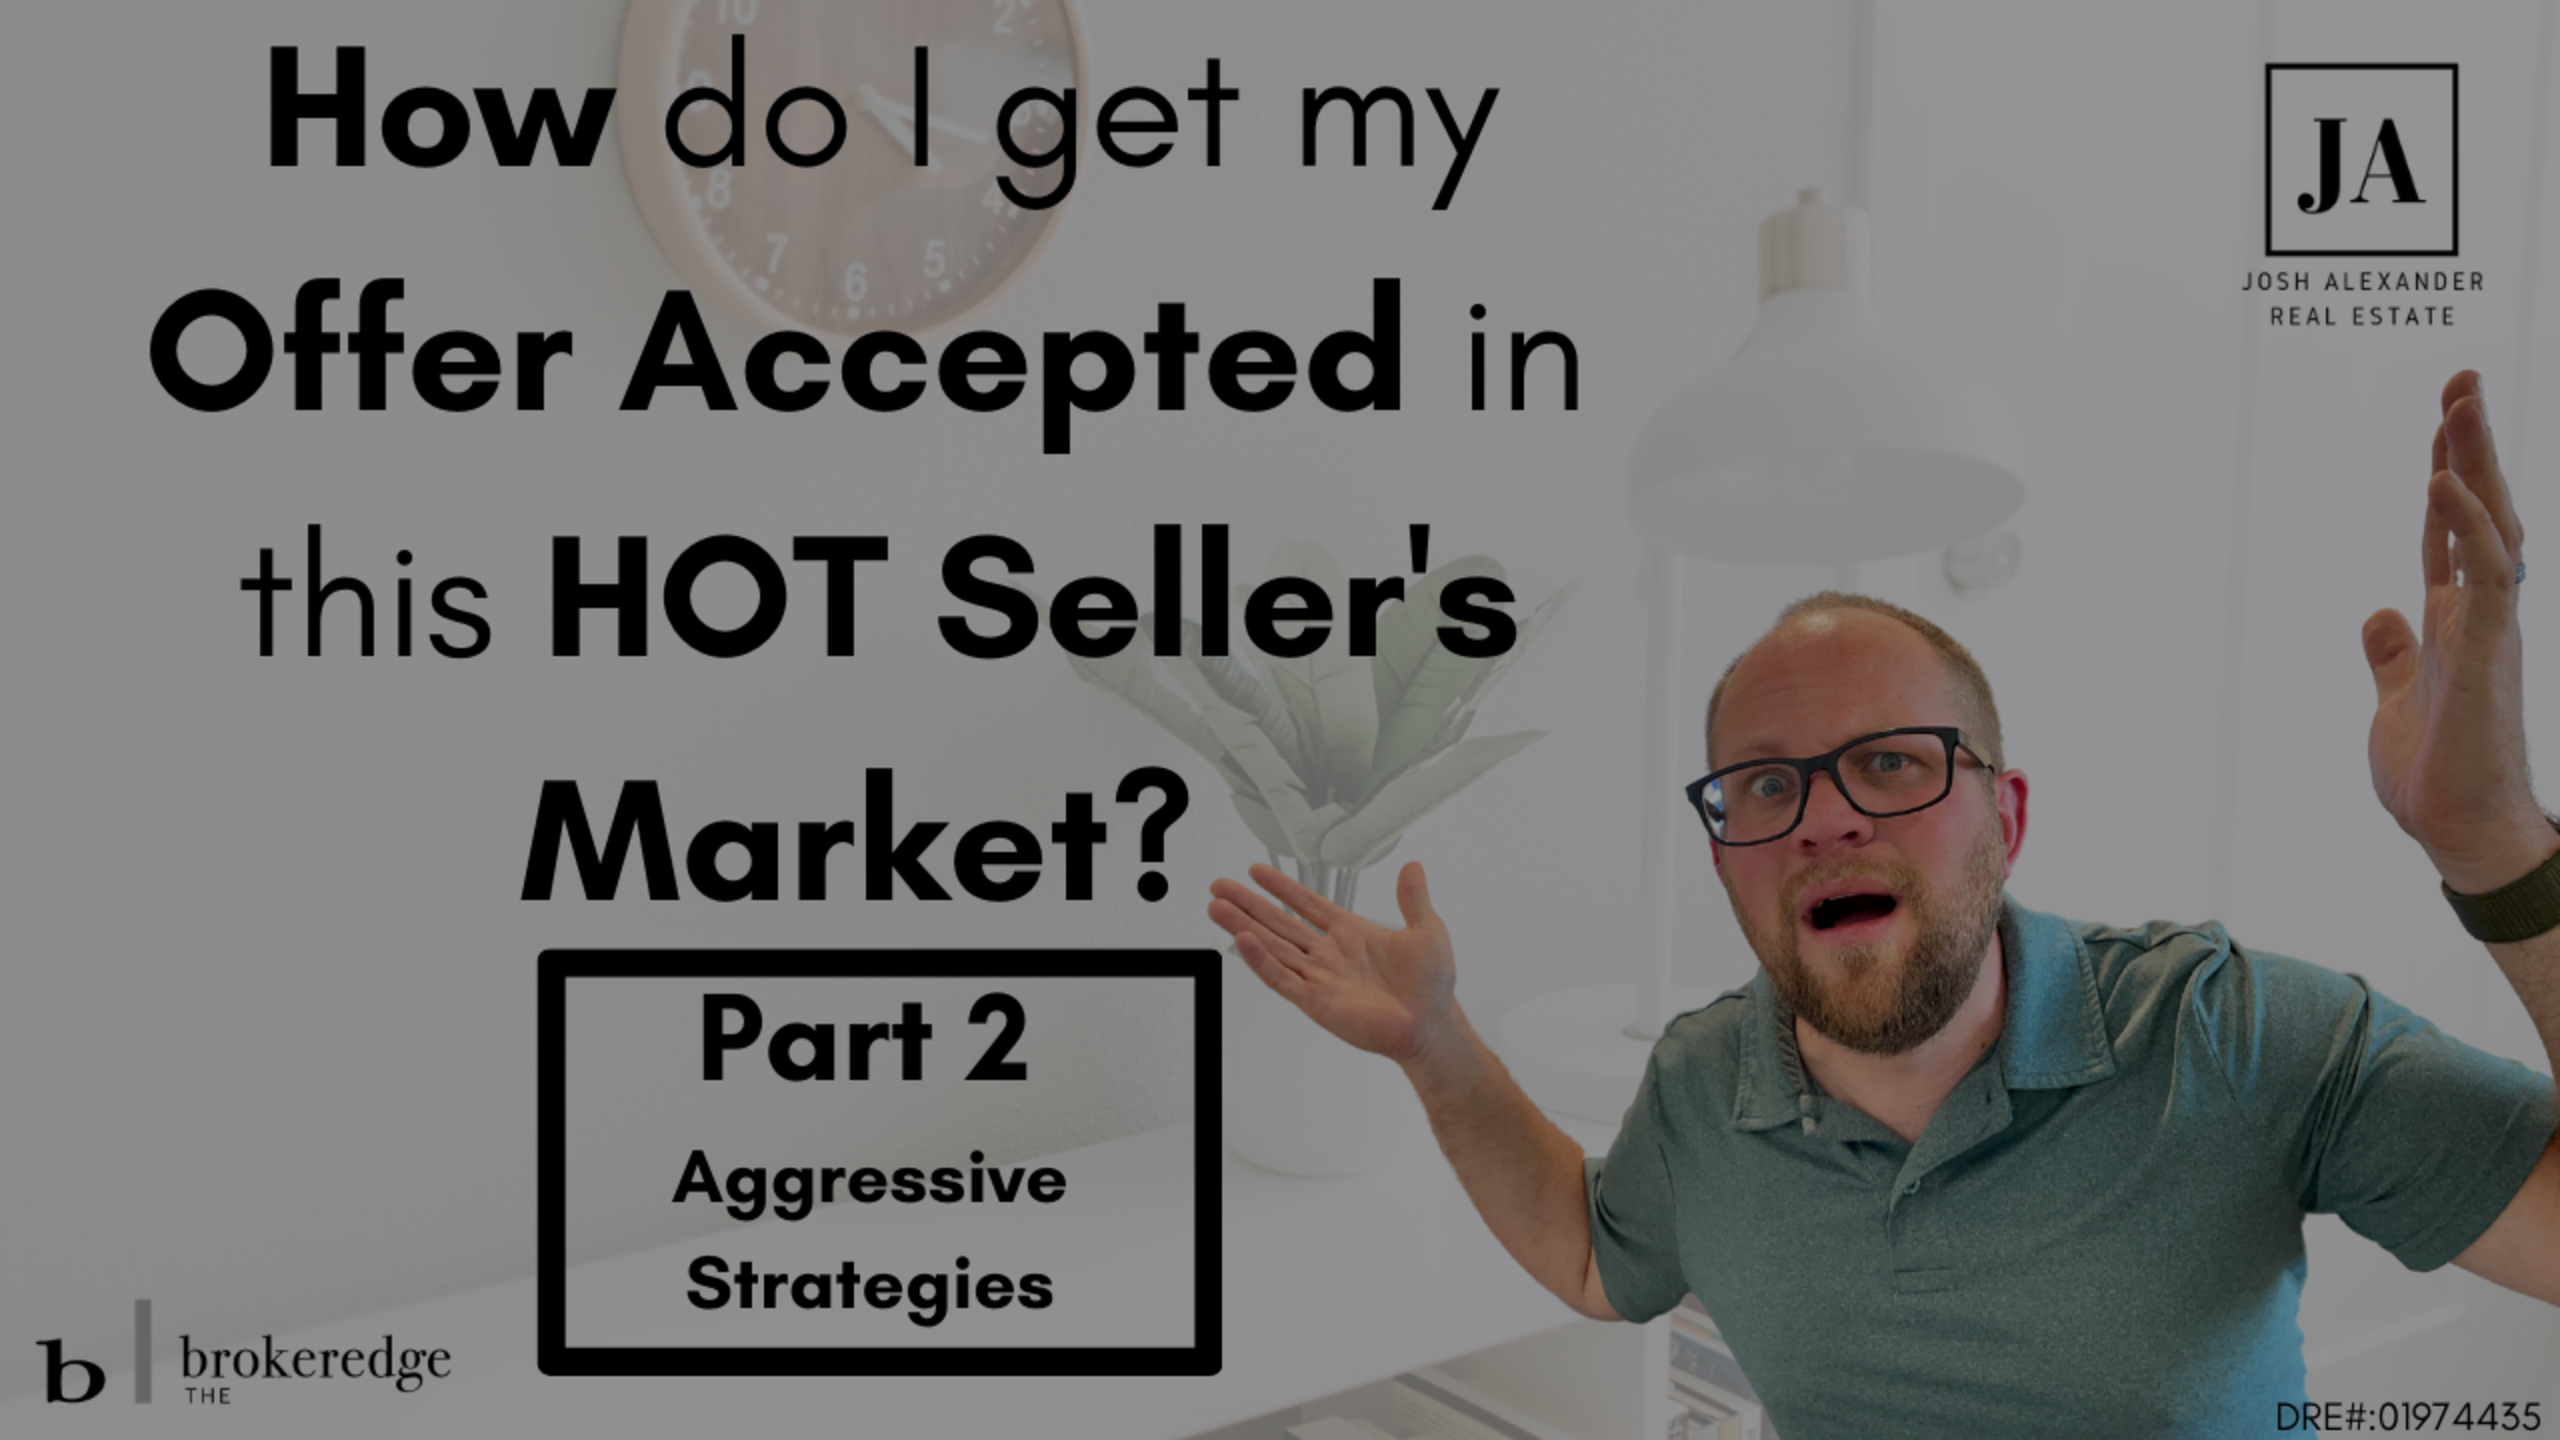 How do I get my offer accepted in this HOT Seller's Market PART 2 – Risky Business